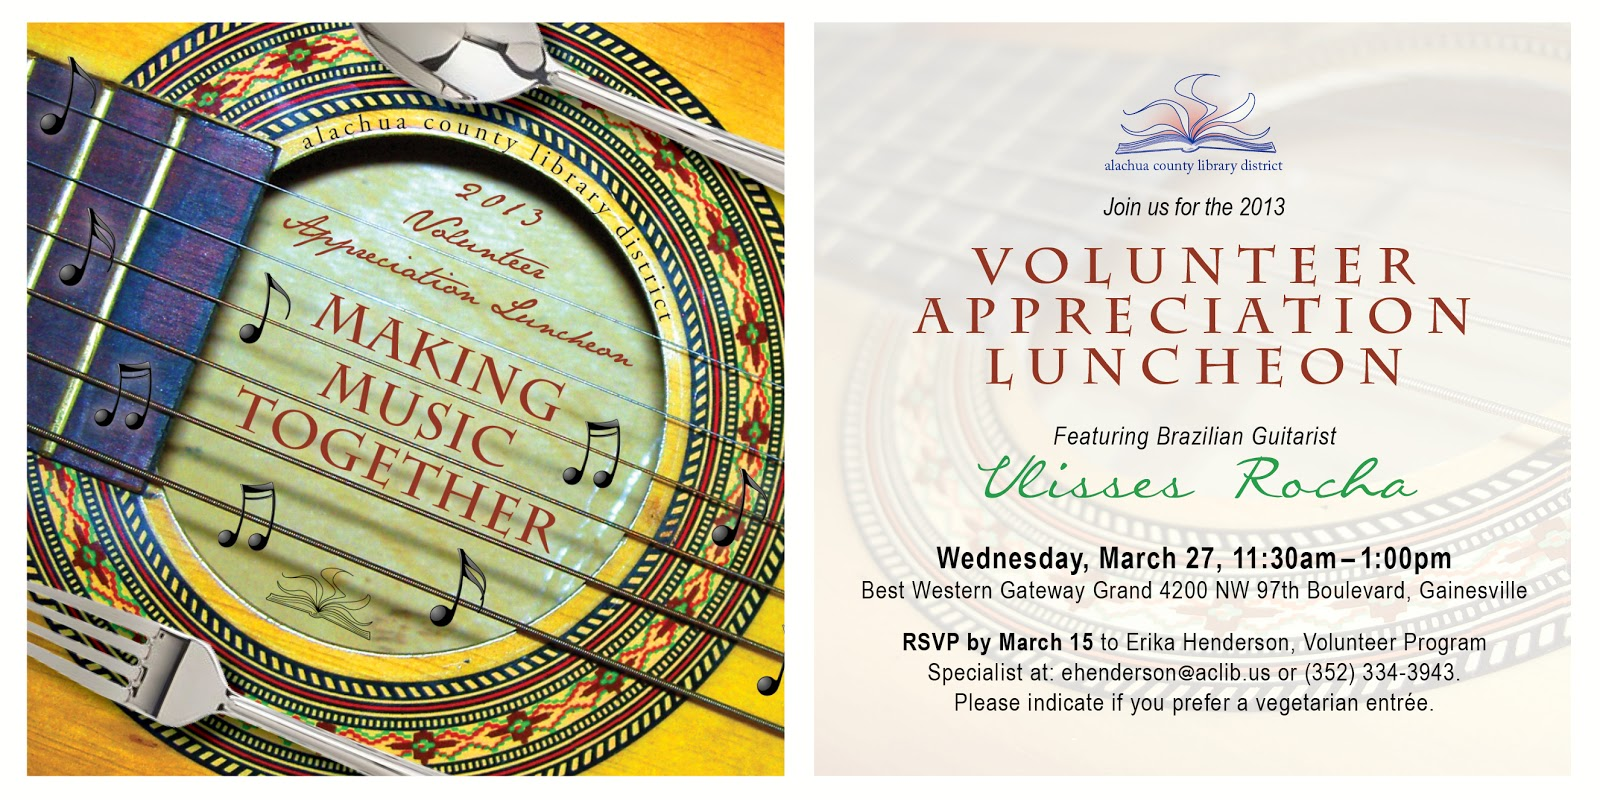 Free Volunteer Luncheon Cliparts, Download Free Clip Art.